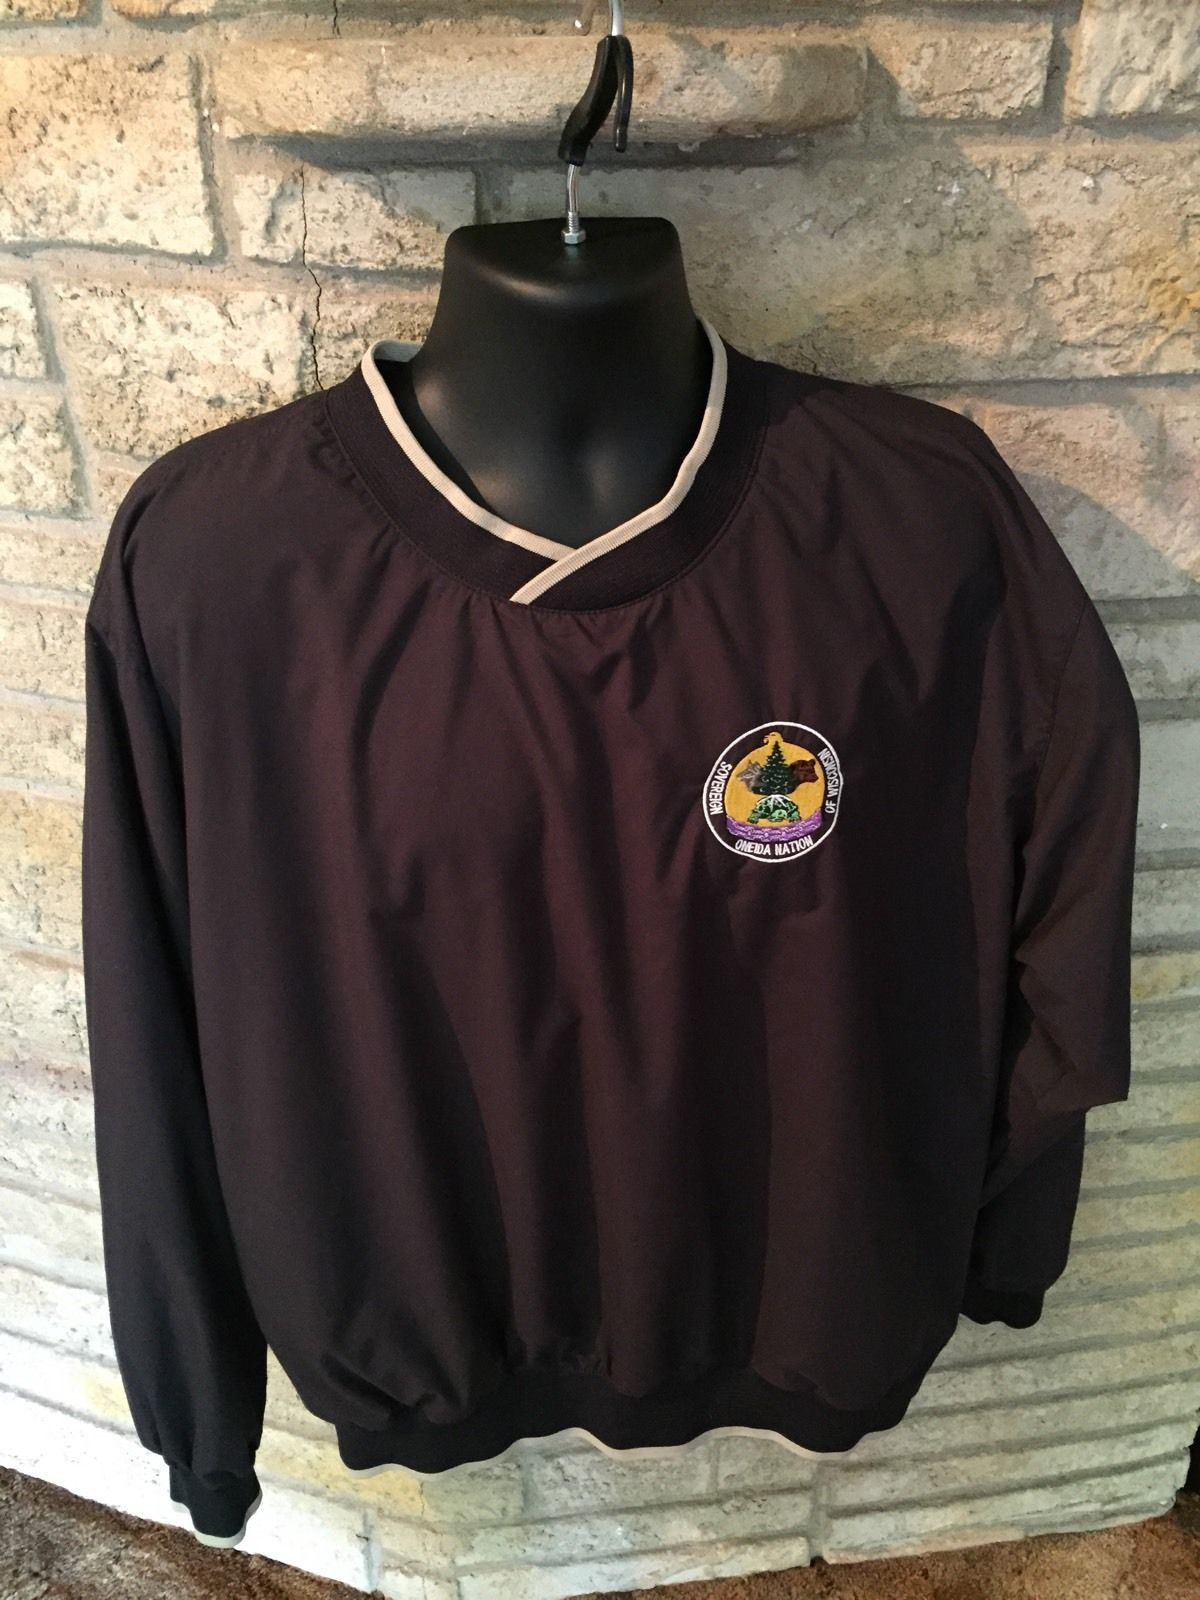 Primary image for Sovereign Oneida Nation Of Wisconsin Pullover Windbreaker Jacket Coat. Sz Large